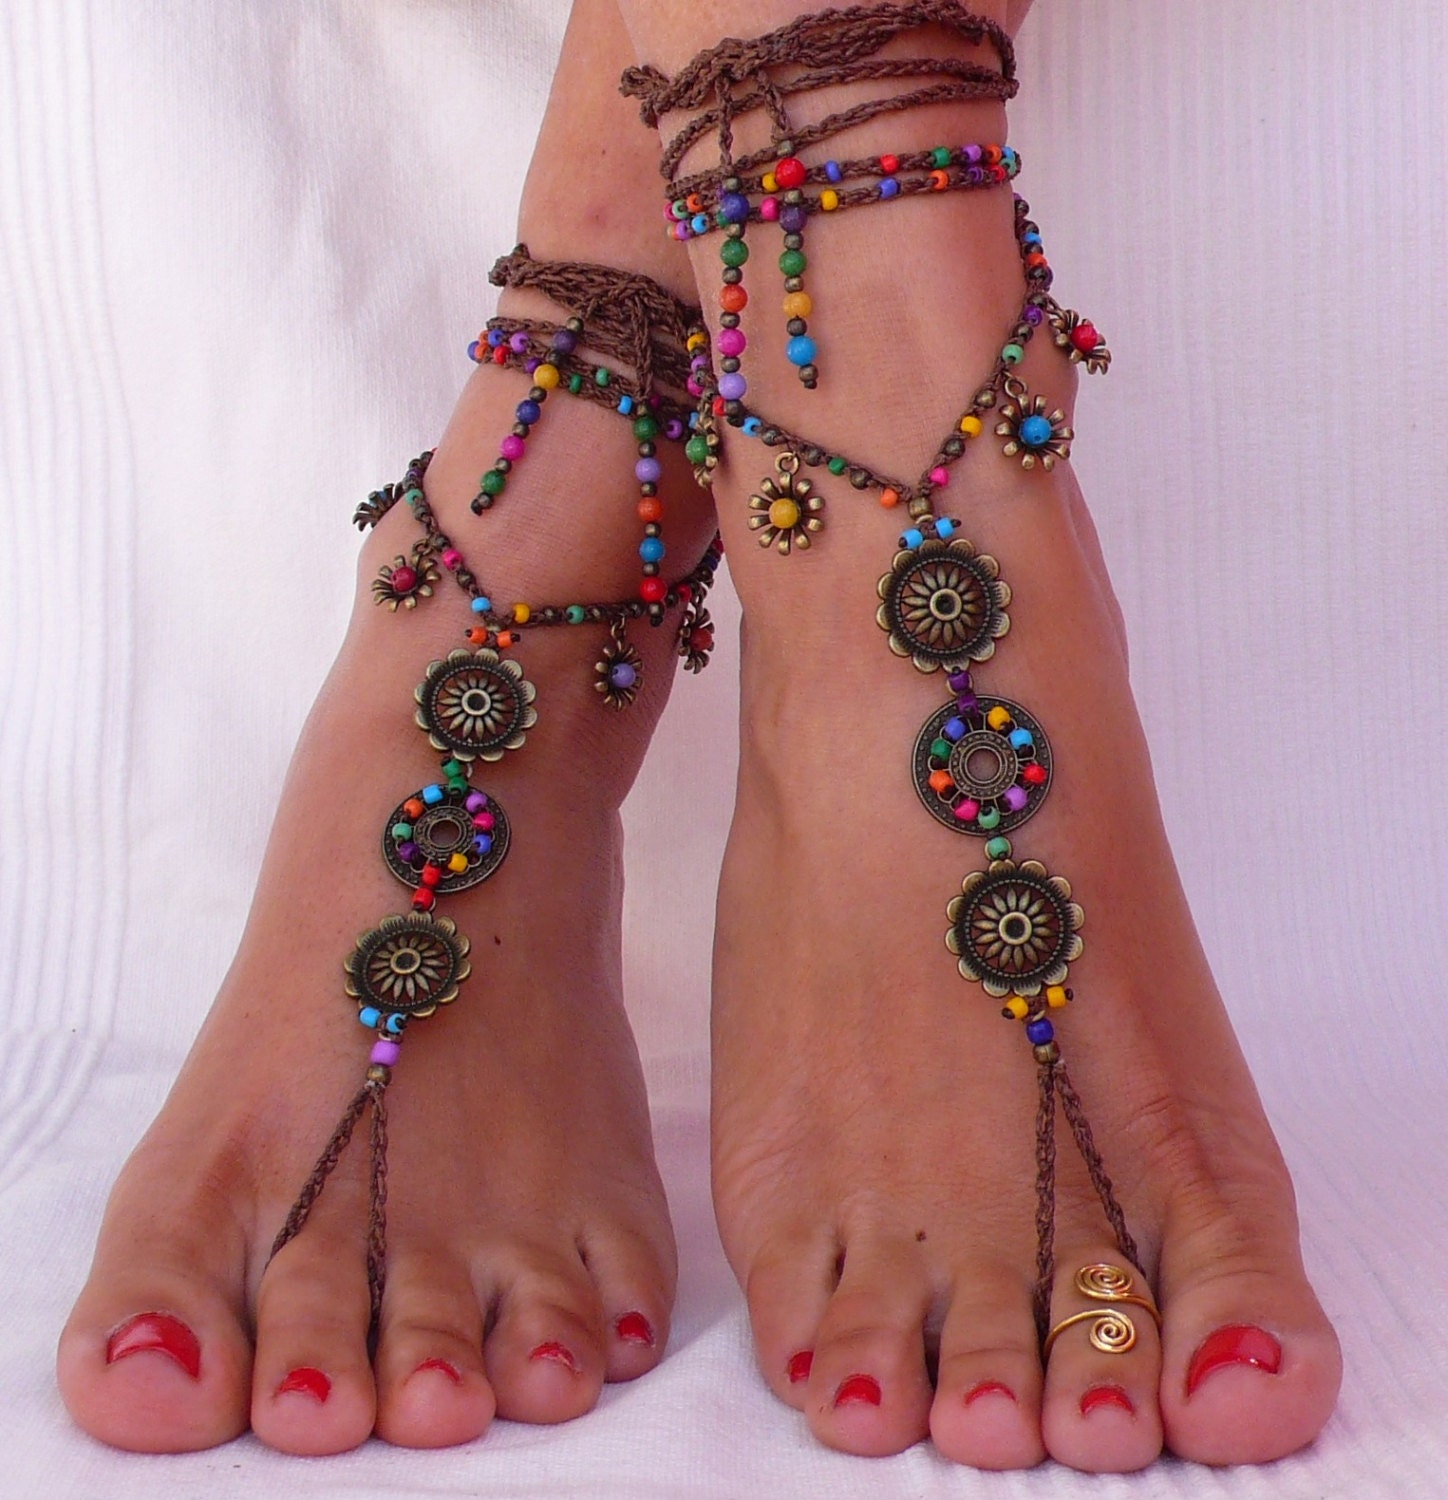 itm jewelry bridal anklet wedding ethnic par ankle chain barefoot bracelet